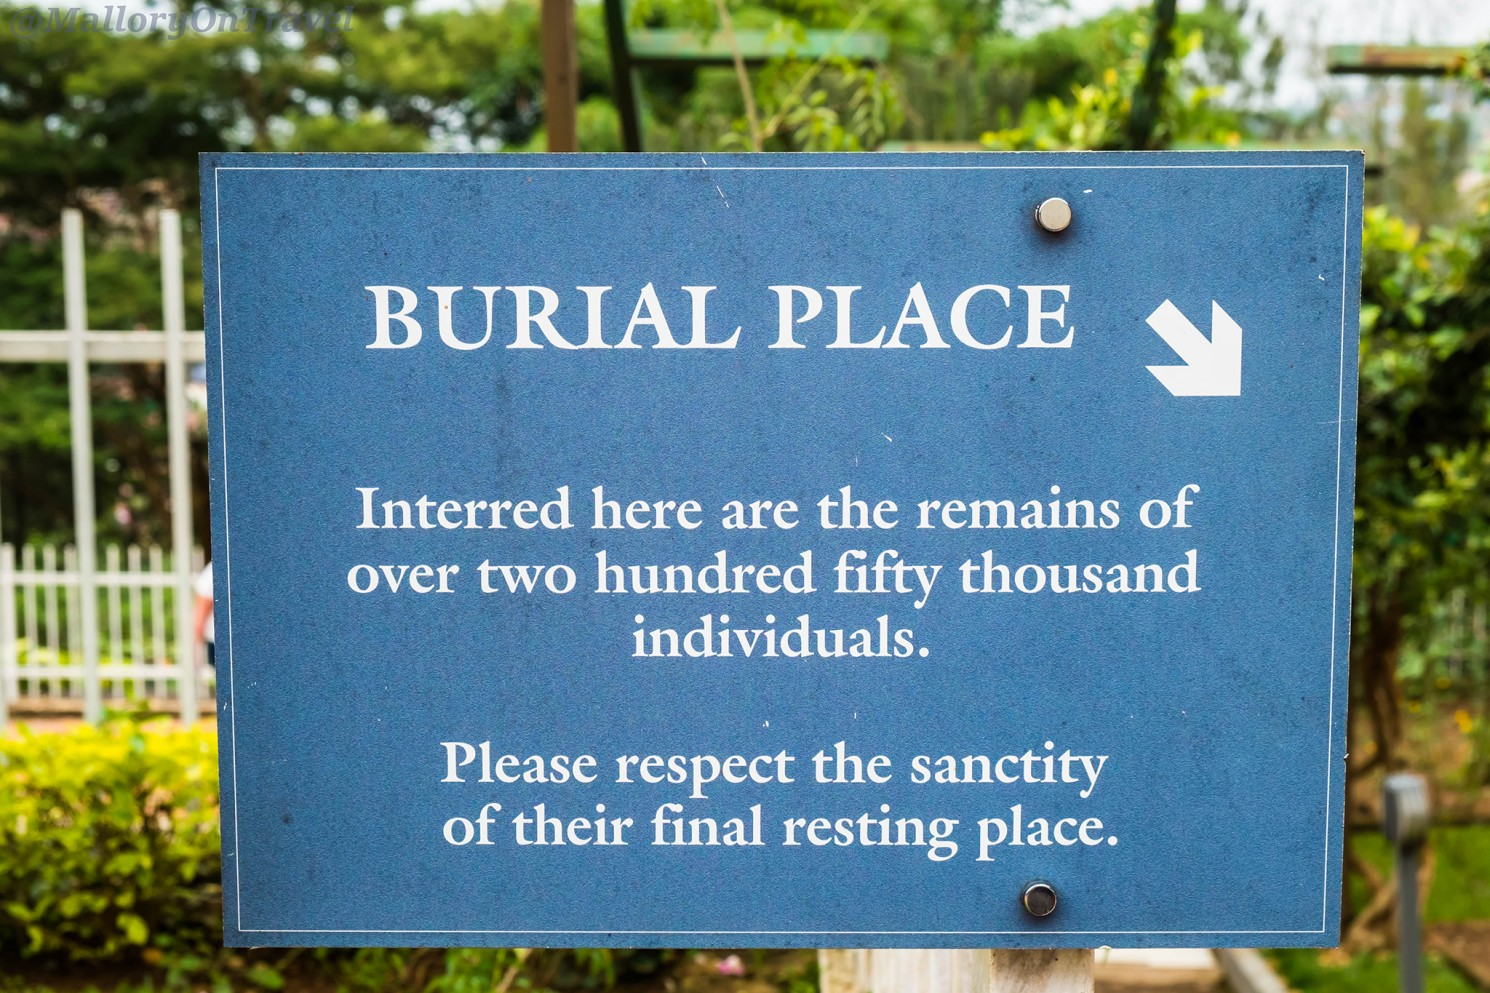 rwanda kigali genocide memorial mallory on travel a sign at the mass grave at kigali genocide memorial centre at rwanda in east africa